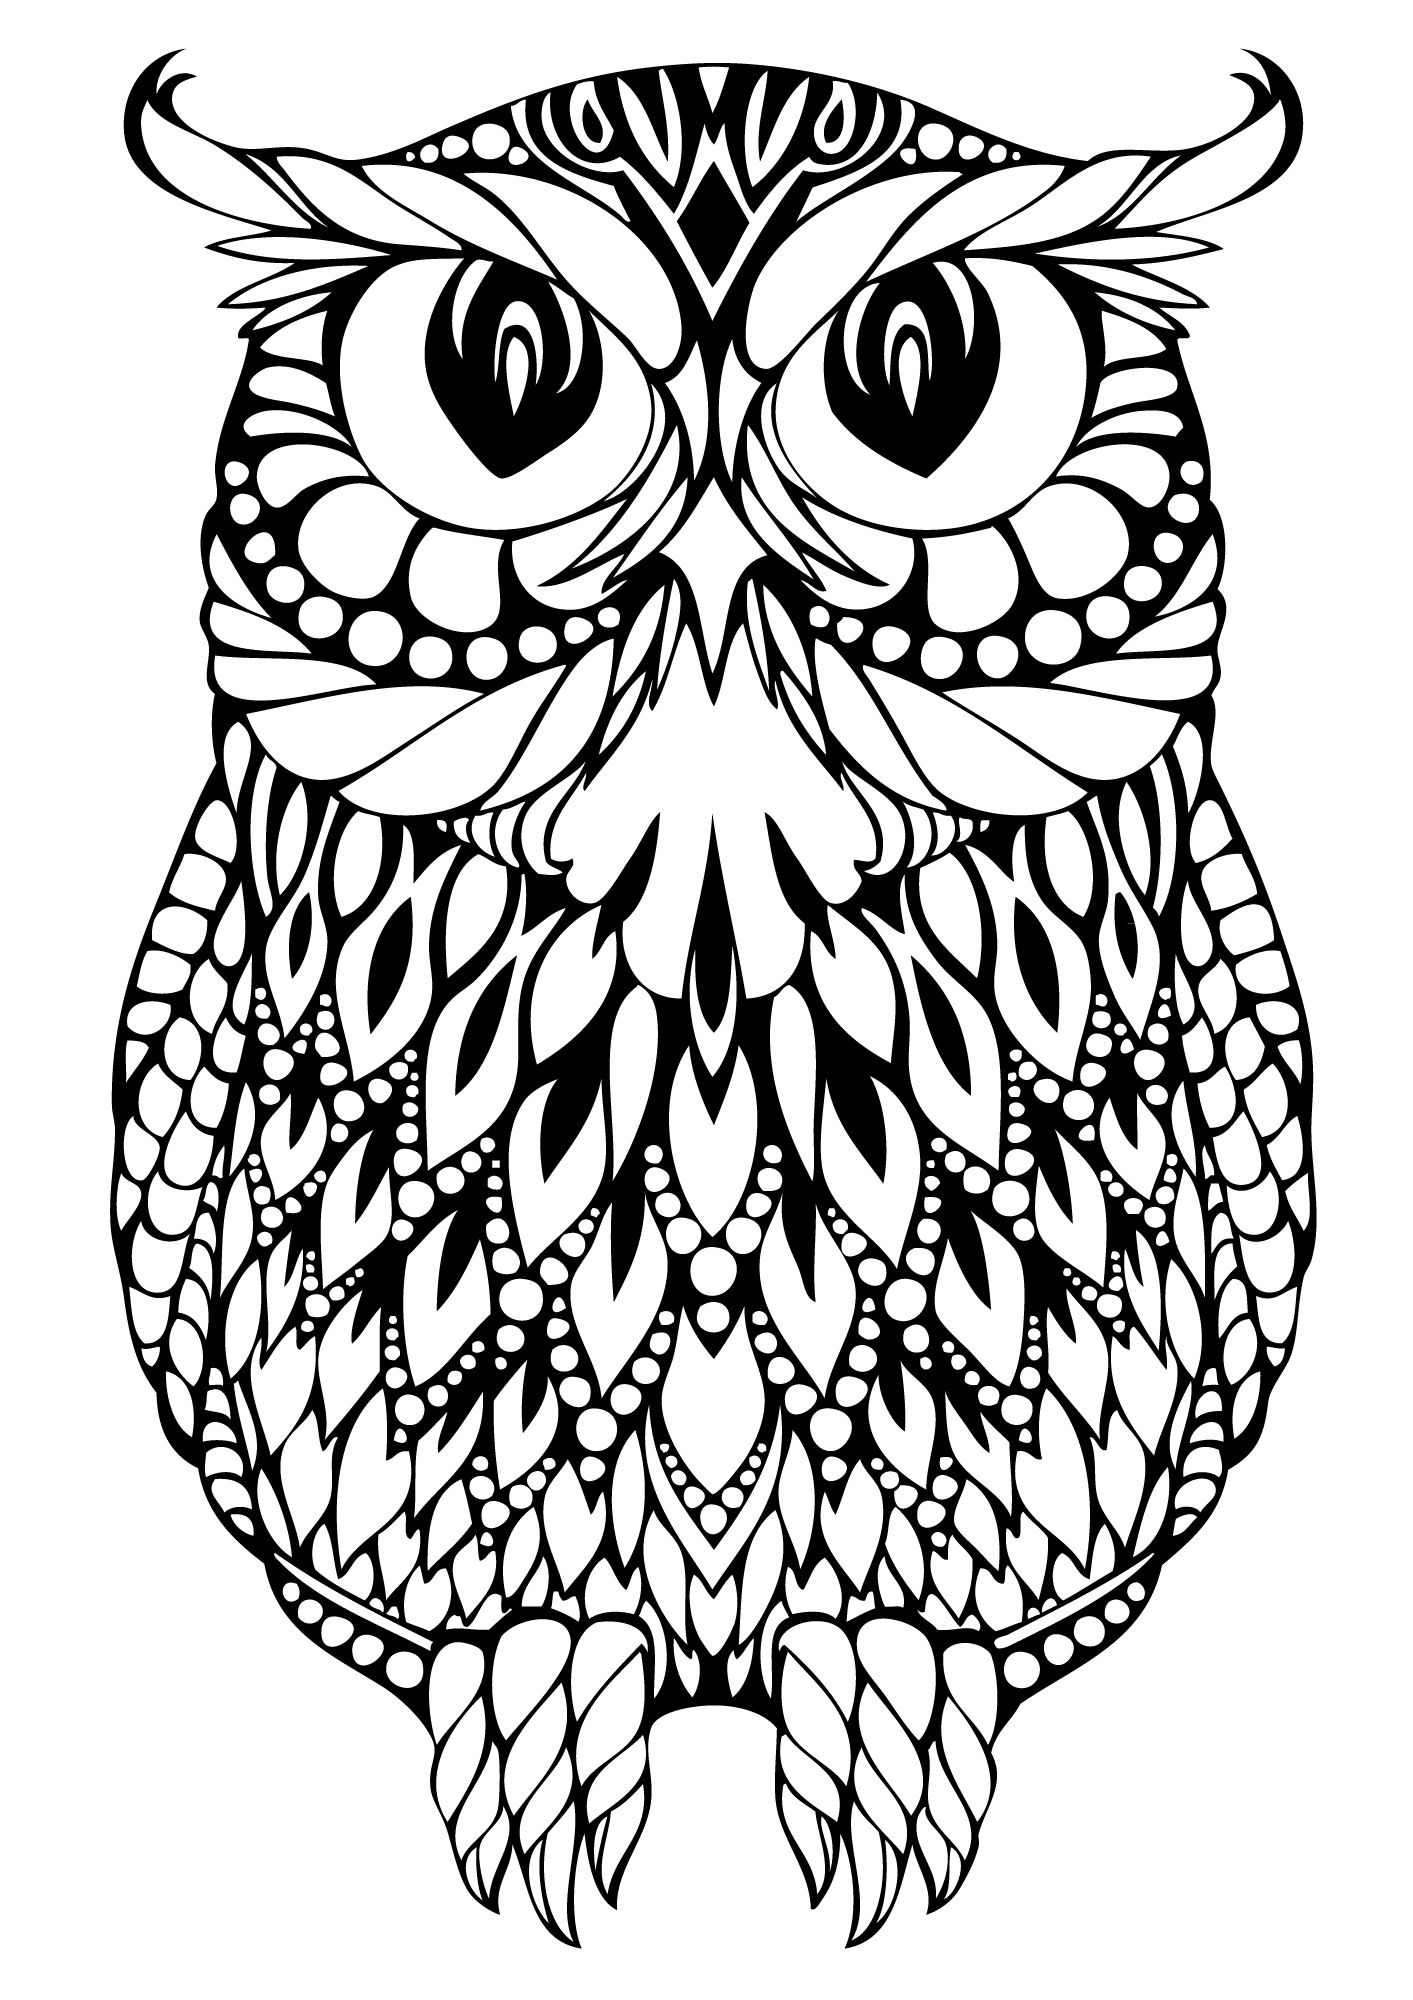 On online owl coloring pages - Owl Coloring Pages Koloringpages